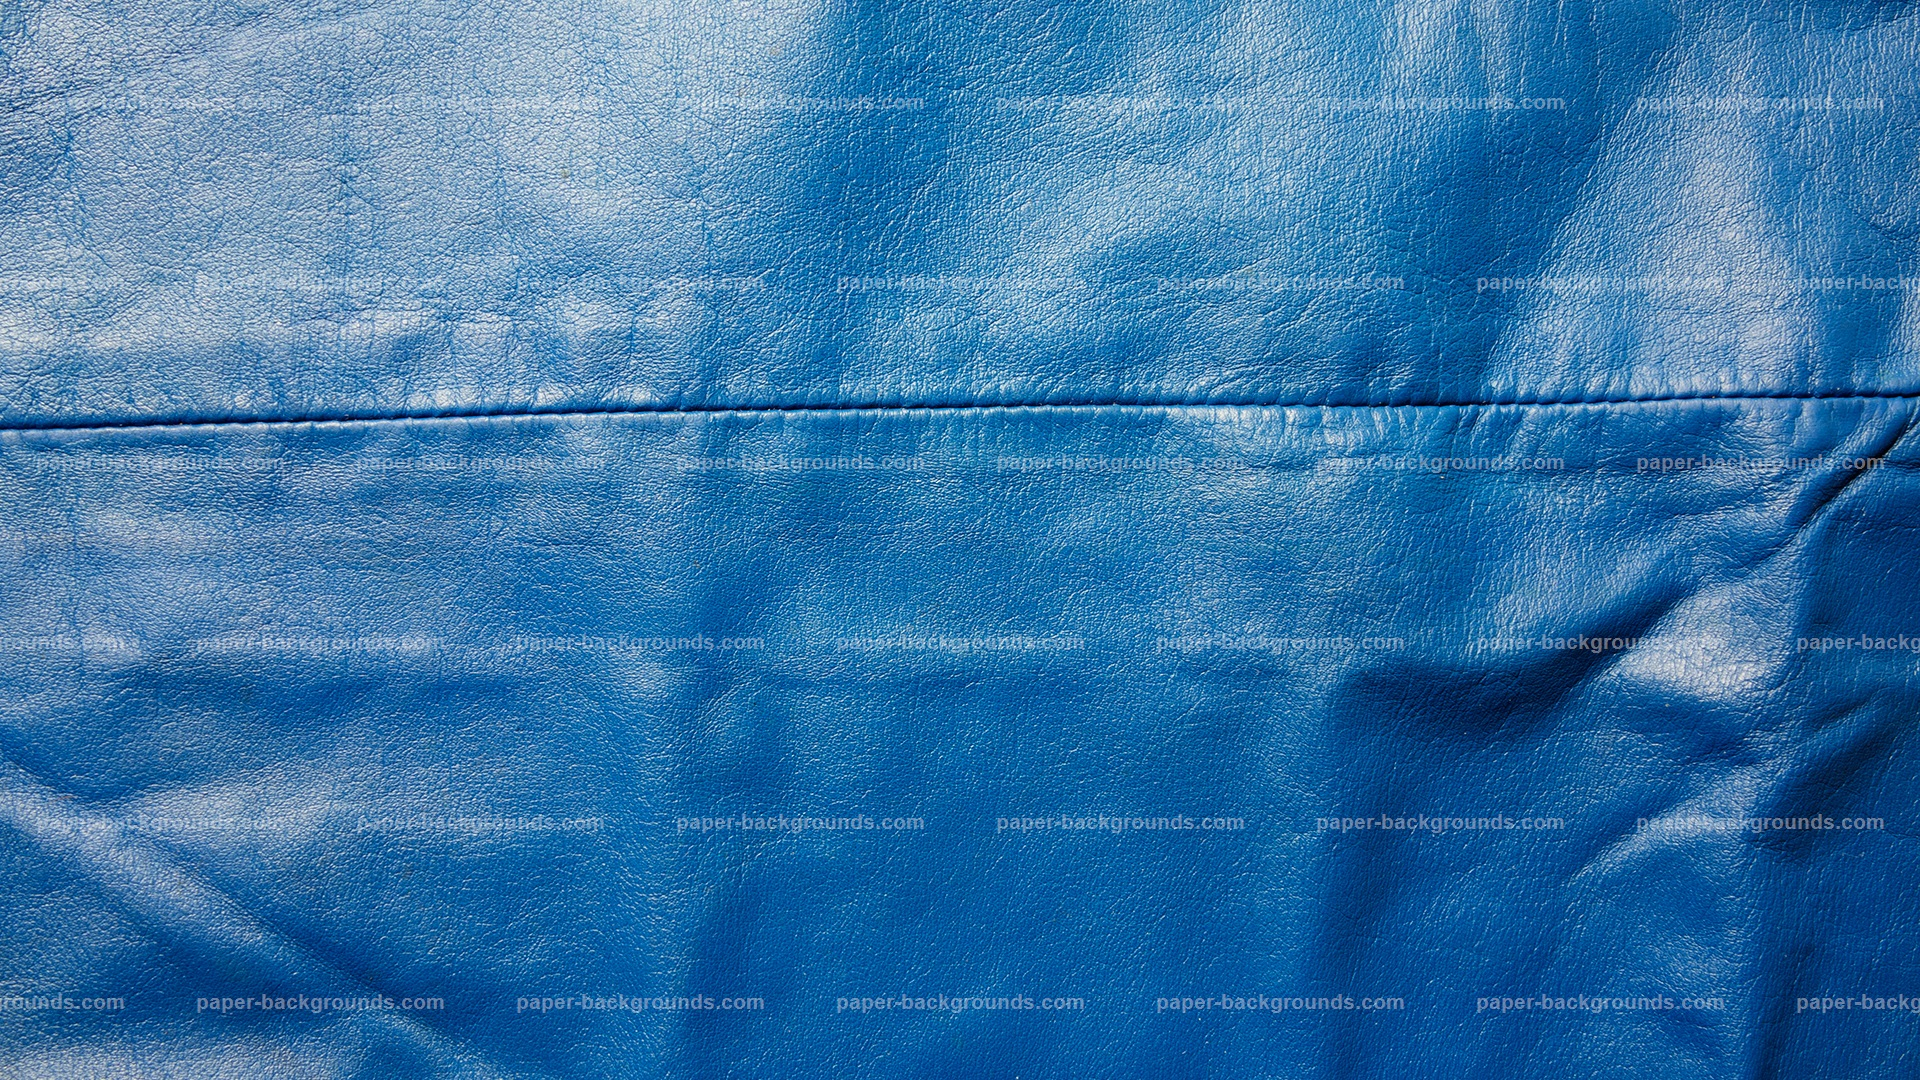 Sewed Blue Leather Texture HD 1920 x 1080p